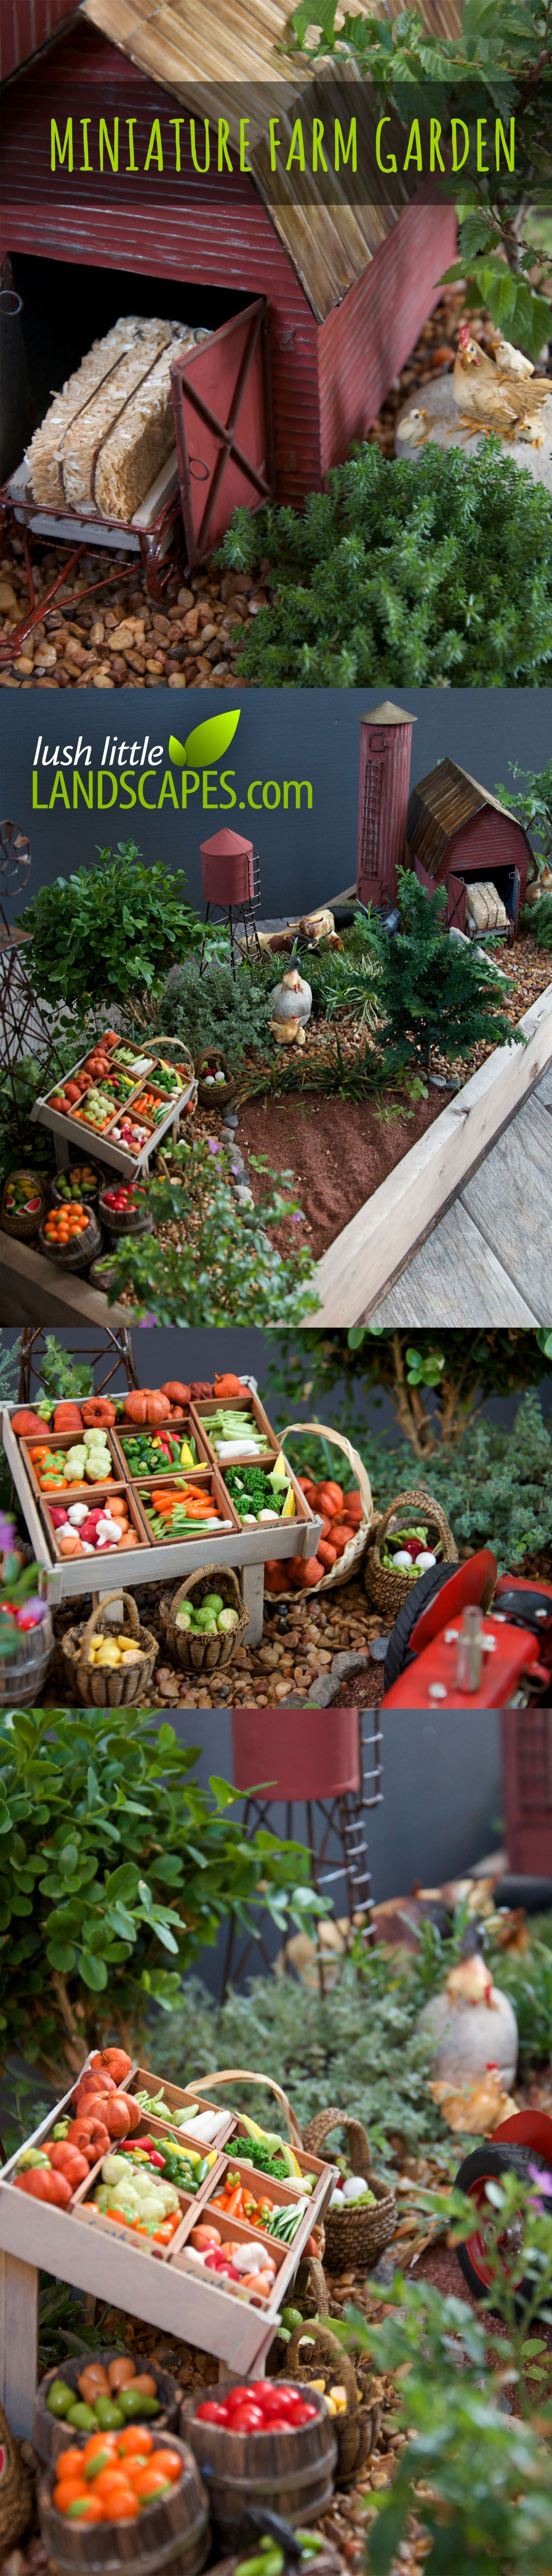 miniature farm garden preview farmstand with tiny fruits and